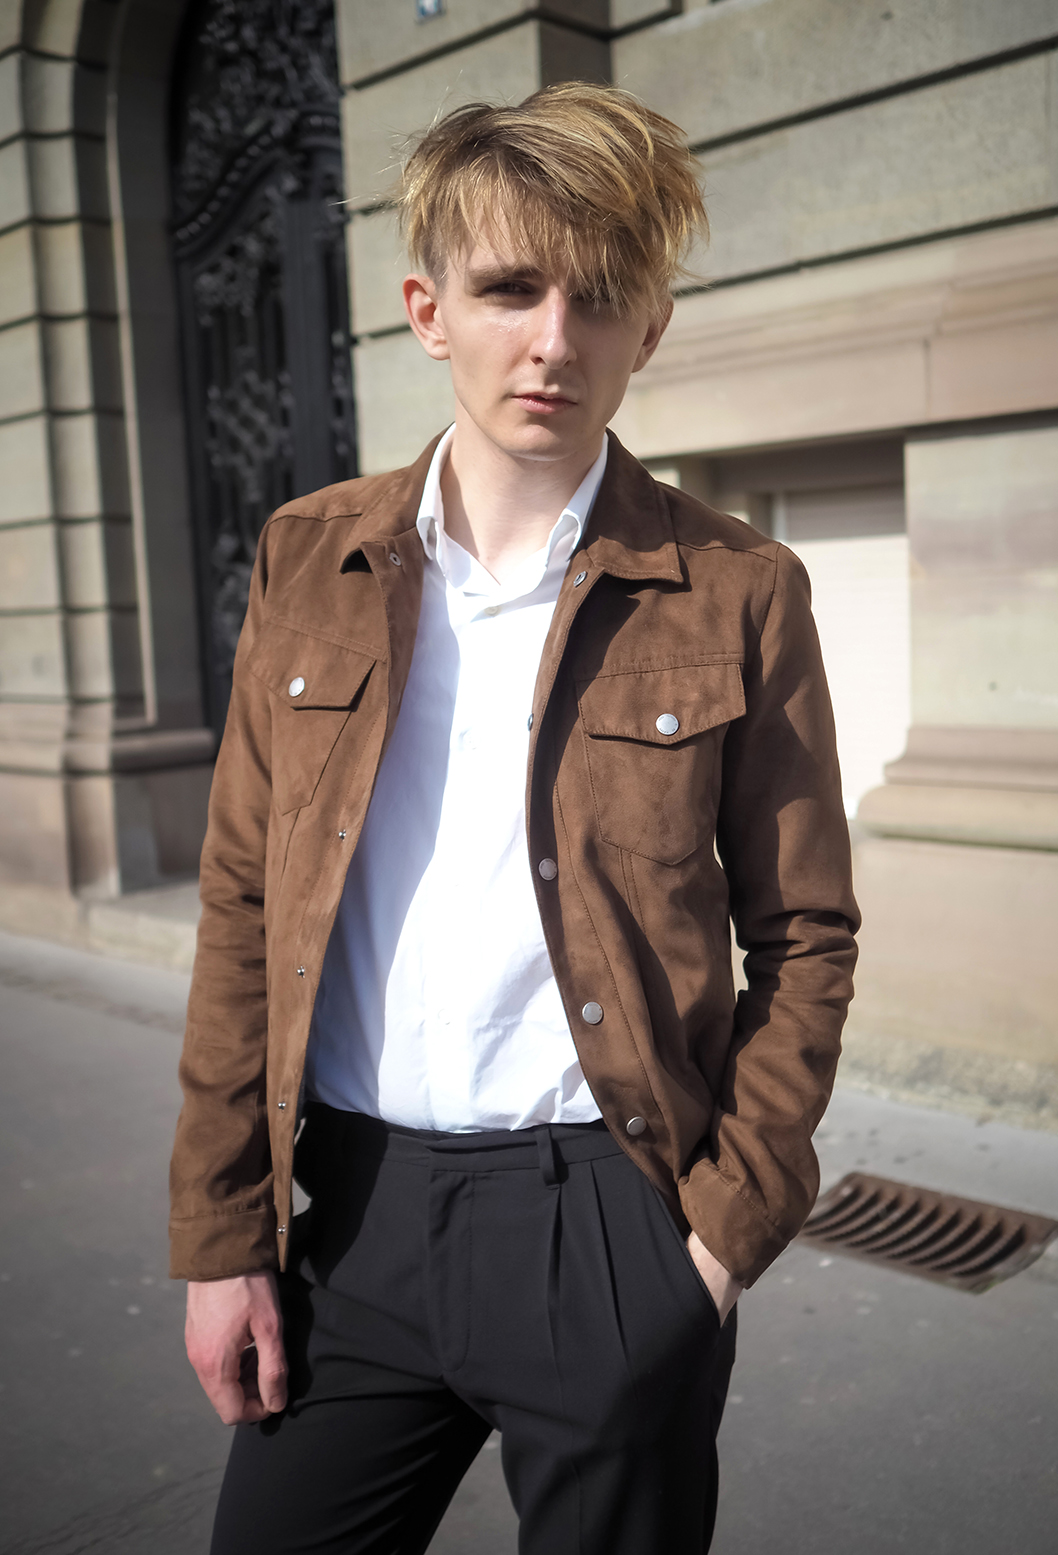 Blog mode homme strasbourg lifestyle Maurice Style Jules